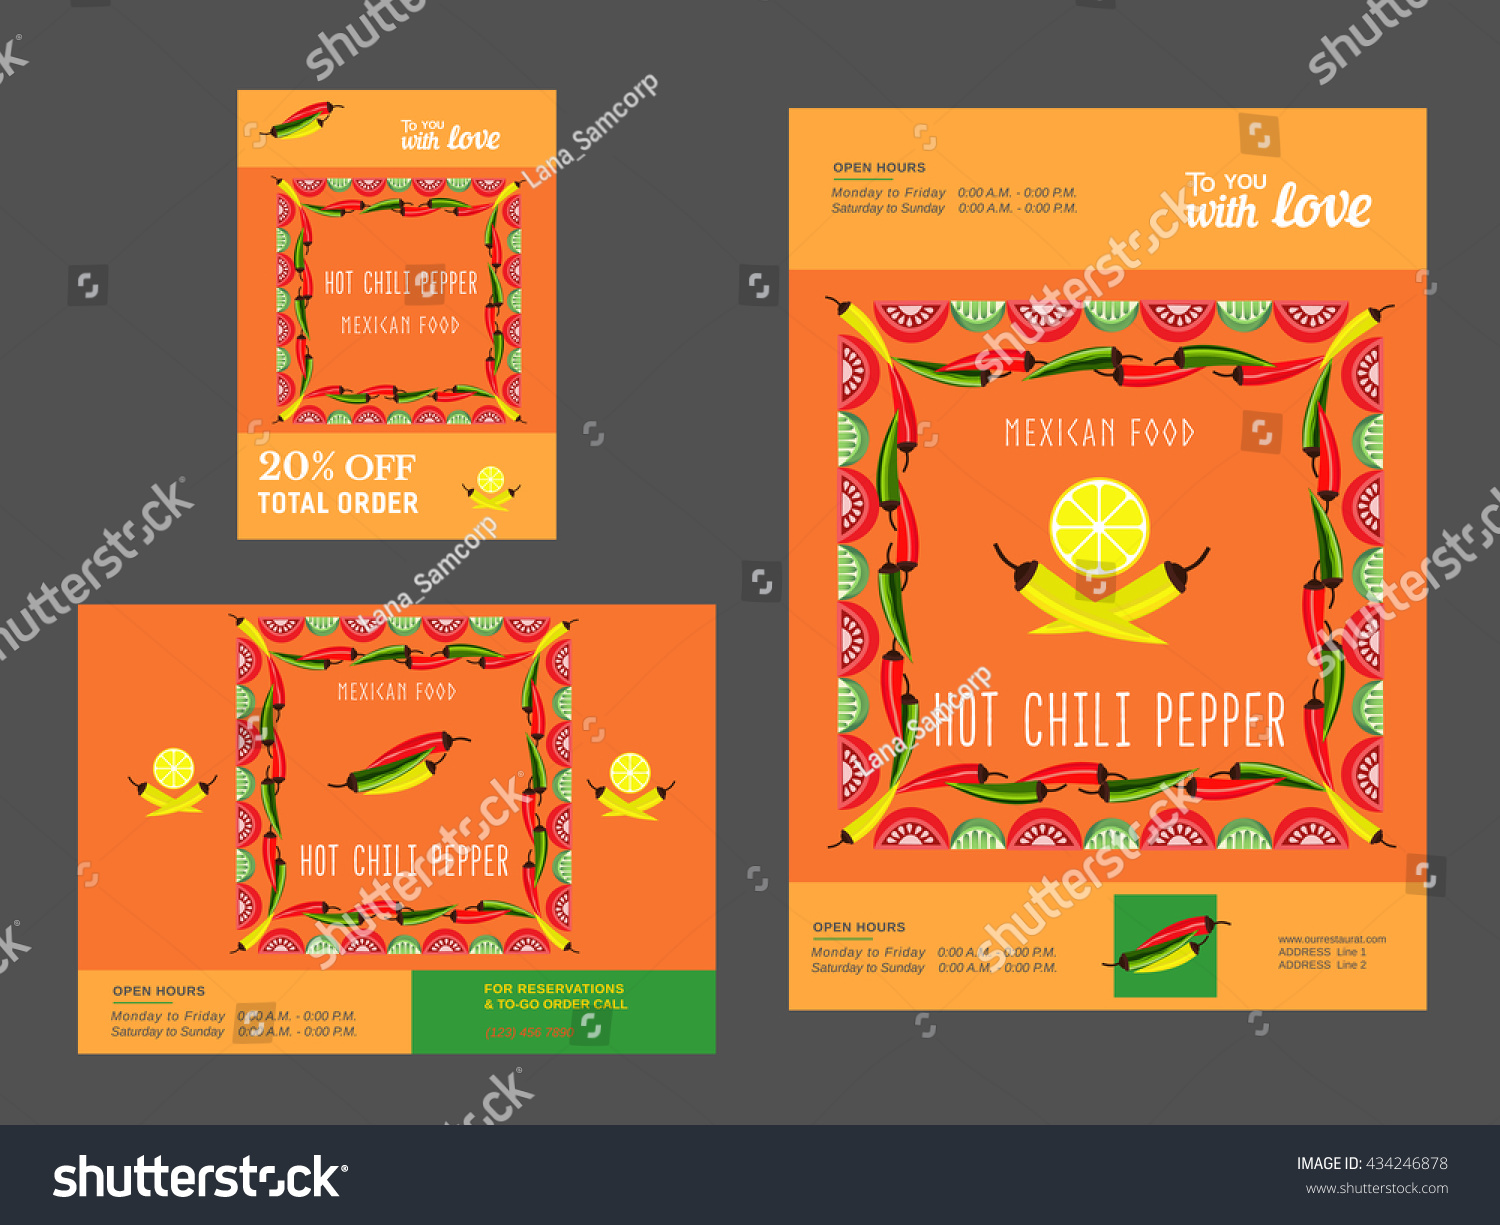 set brochure templates restaurant mexican food stock vector set of brochure templates for restaurant mexican food advertisement flyer a4 a5 a6